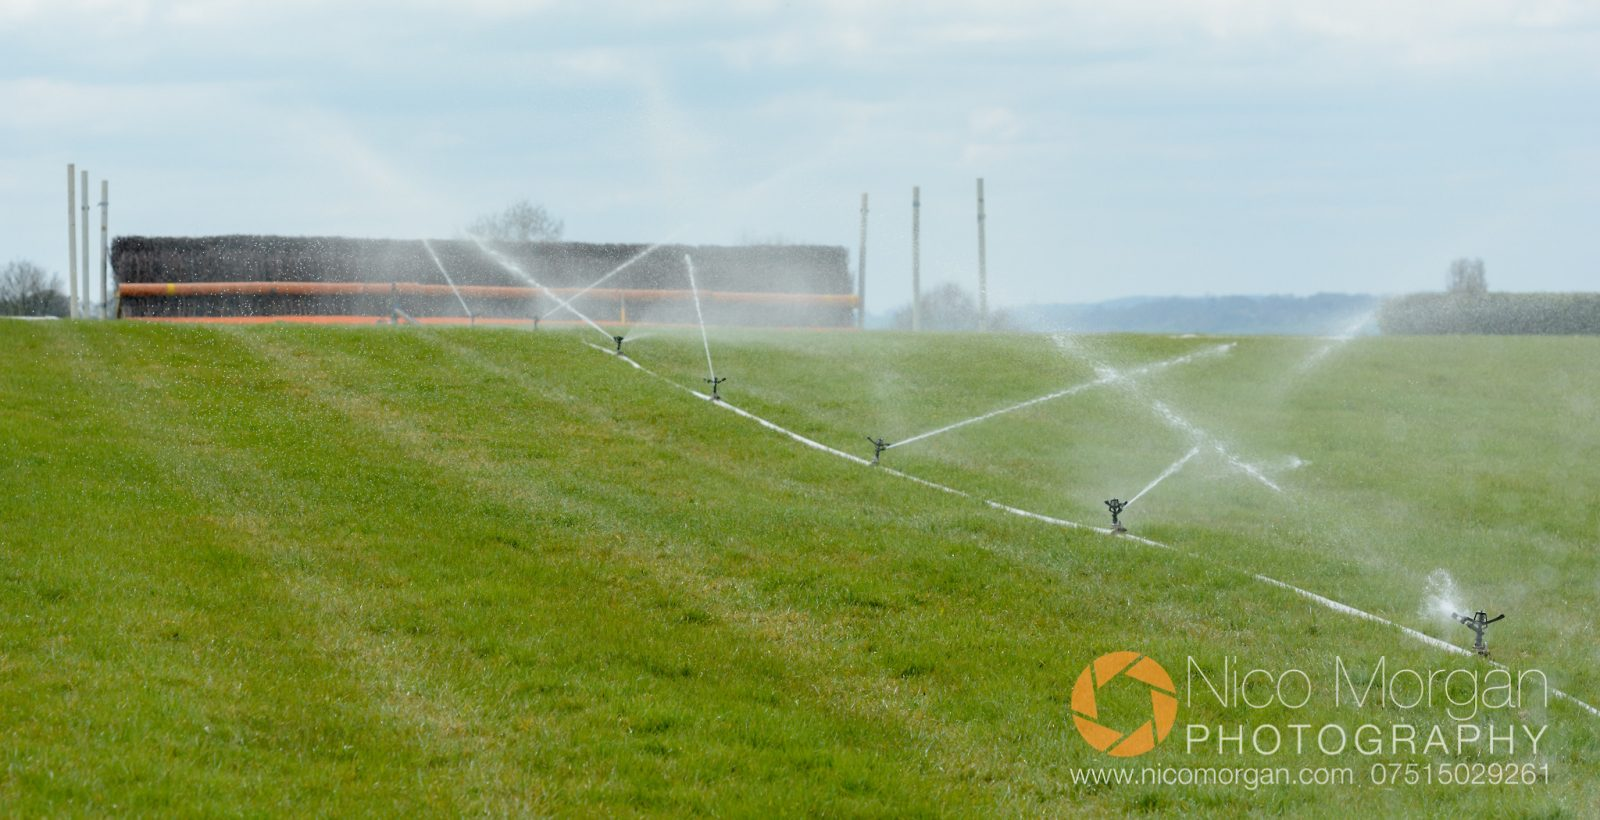 Watering in progress at Garthorpe